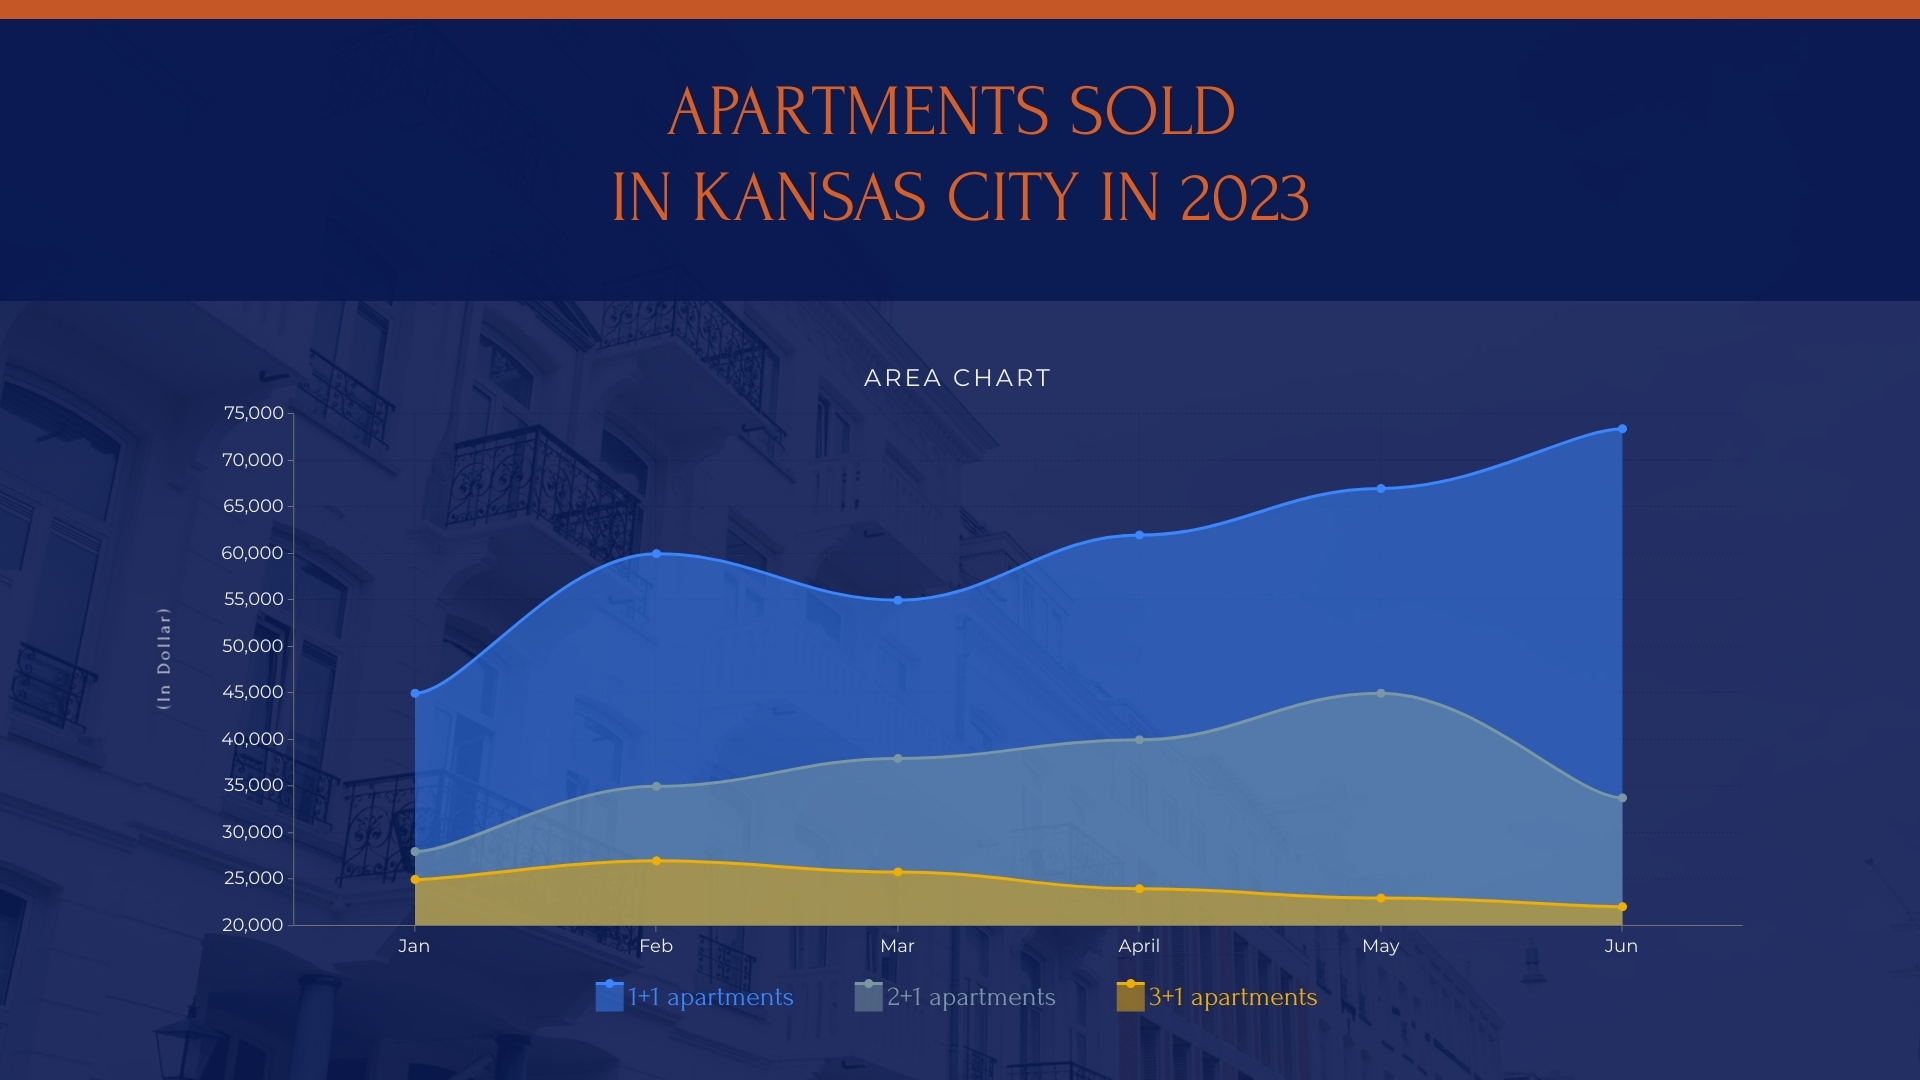 Apartments Sold in Kansas City in 2023 Area Chart Template